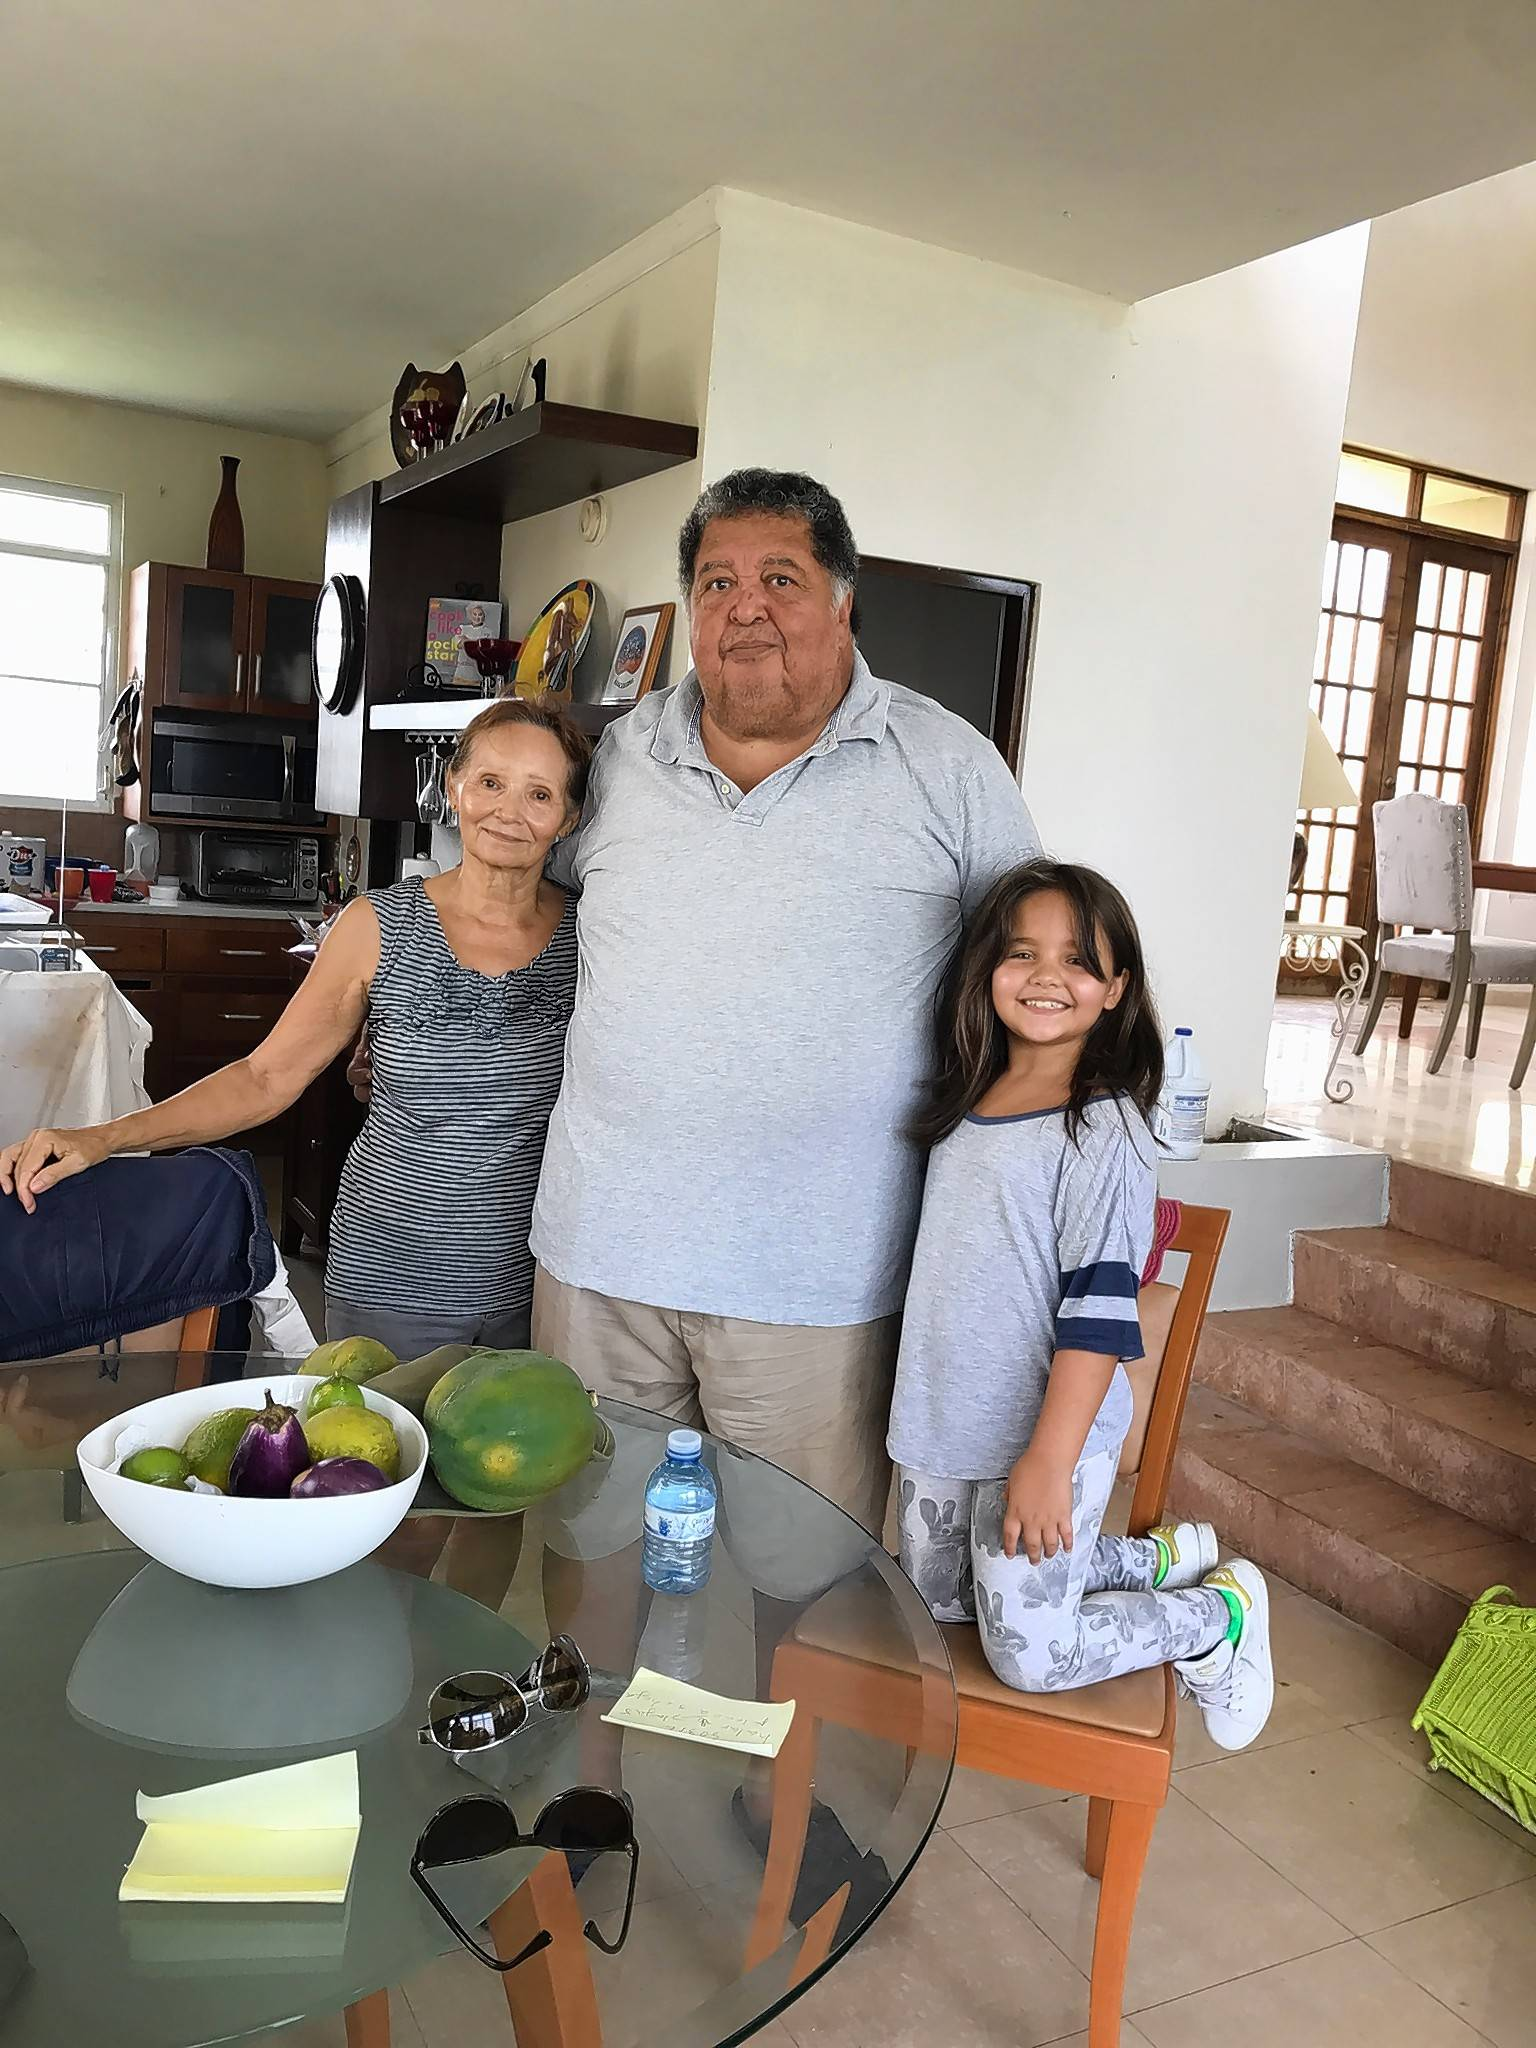 Ivelisse Robles Lynch of Cary received this photo of her parents in Puerto Rico, Elvyn Robles and Carmita Feliciano Robles, and their granddaughter Adriana Stella, on Friday afternoon -- a huge relief after two days of uncertainty.